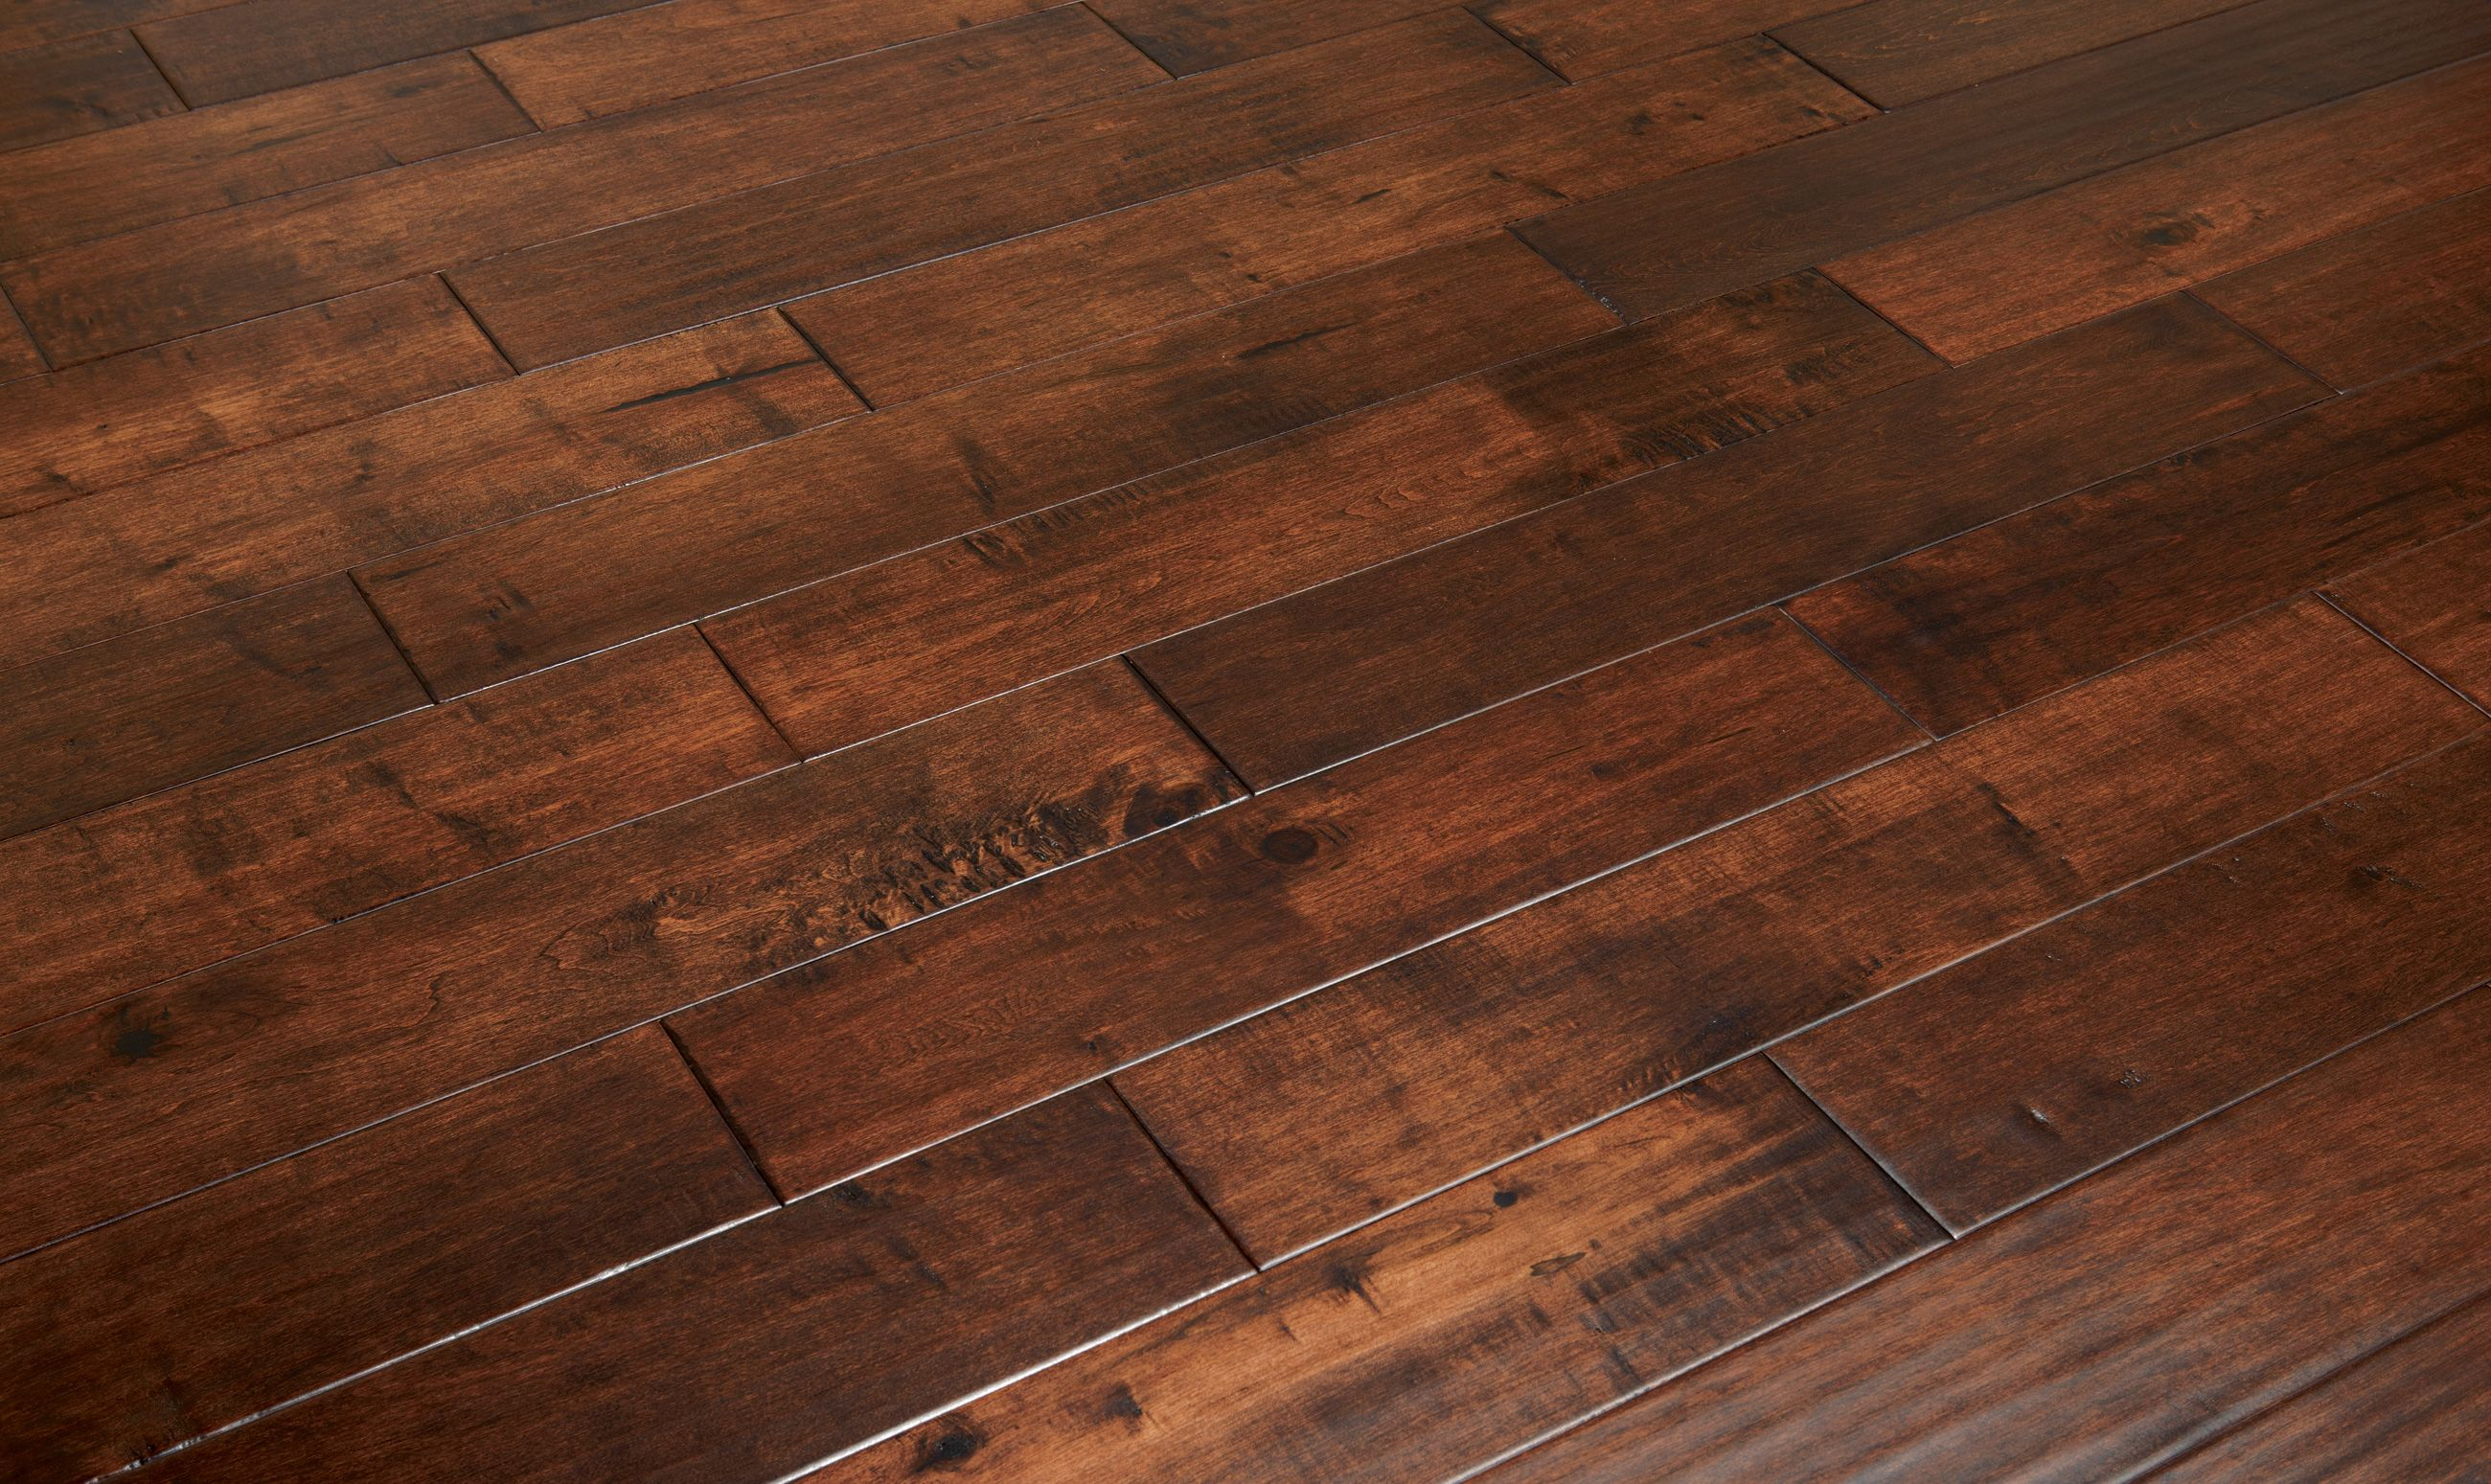 Grant Dark Solid Wood Floors Maple Hardwood Flooring Maple Hardwood Floors Hardwood Floors Flooring